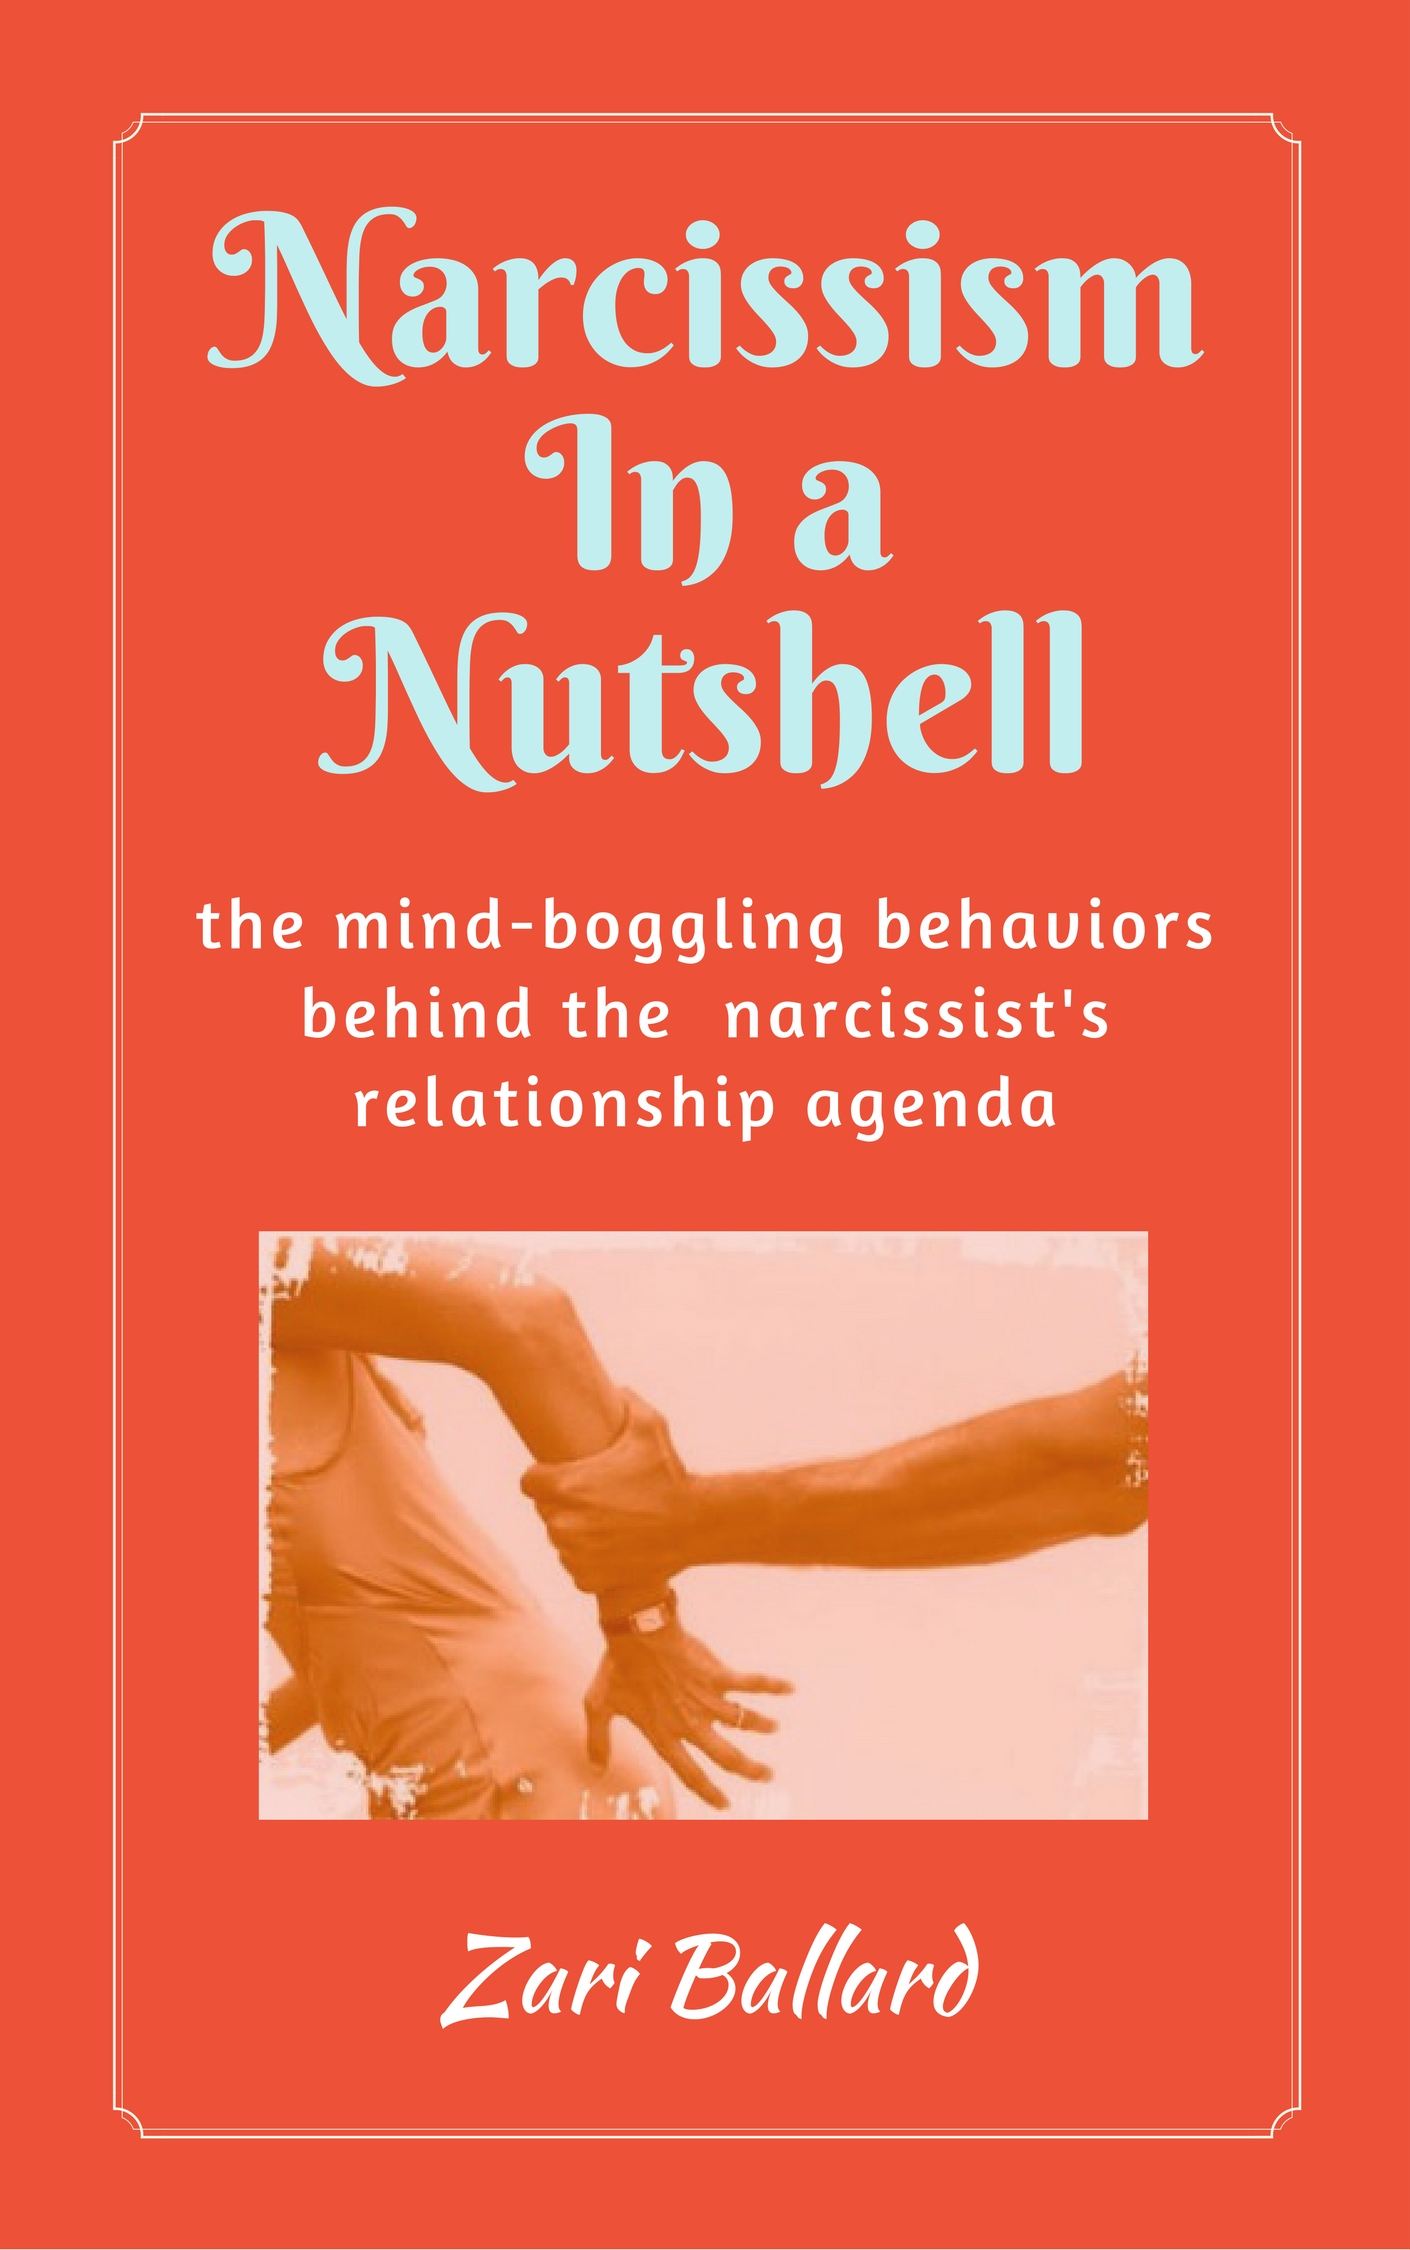 Narcissism In a Nutshell: The Mind-Boggling Behaviors Behind the  Narcissist's Relationship Agenda, an Ebook by Zari Ballard